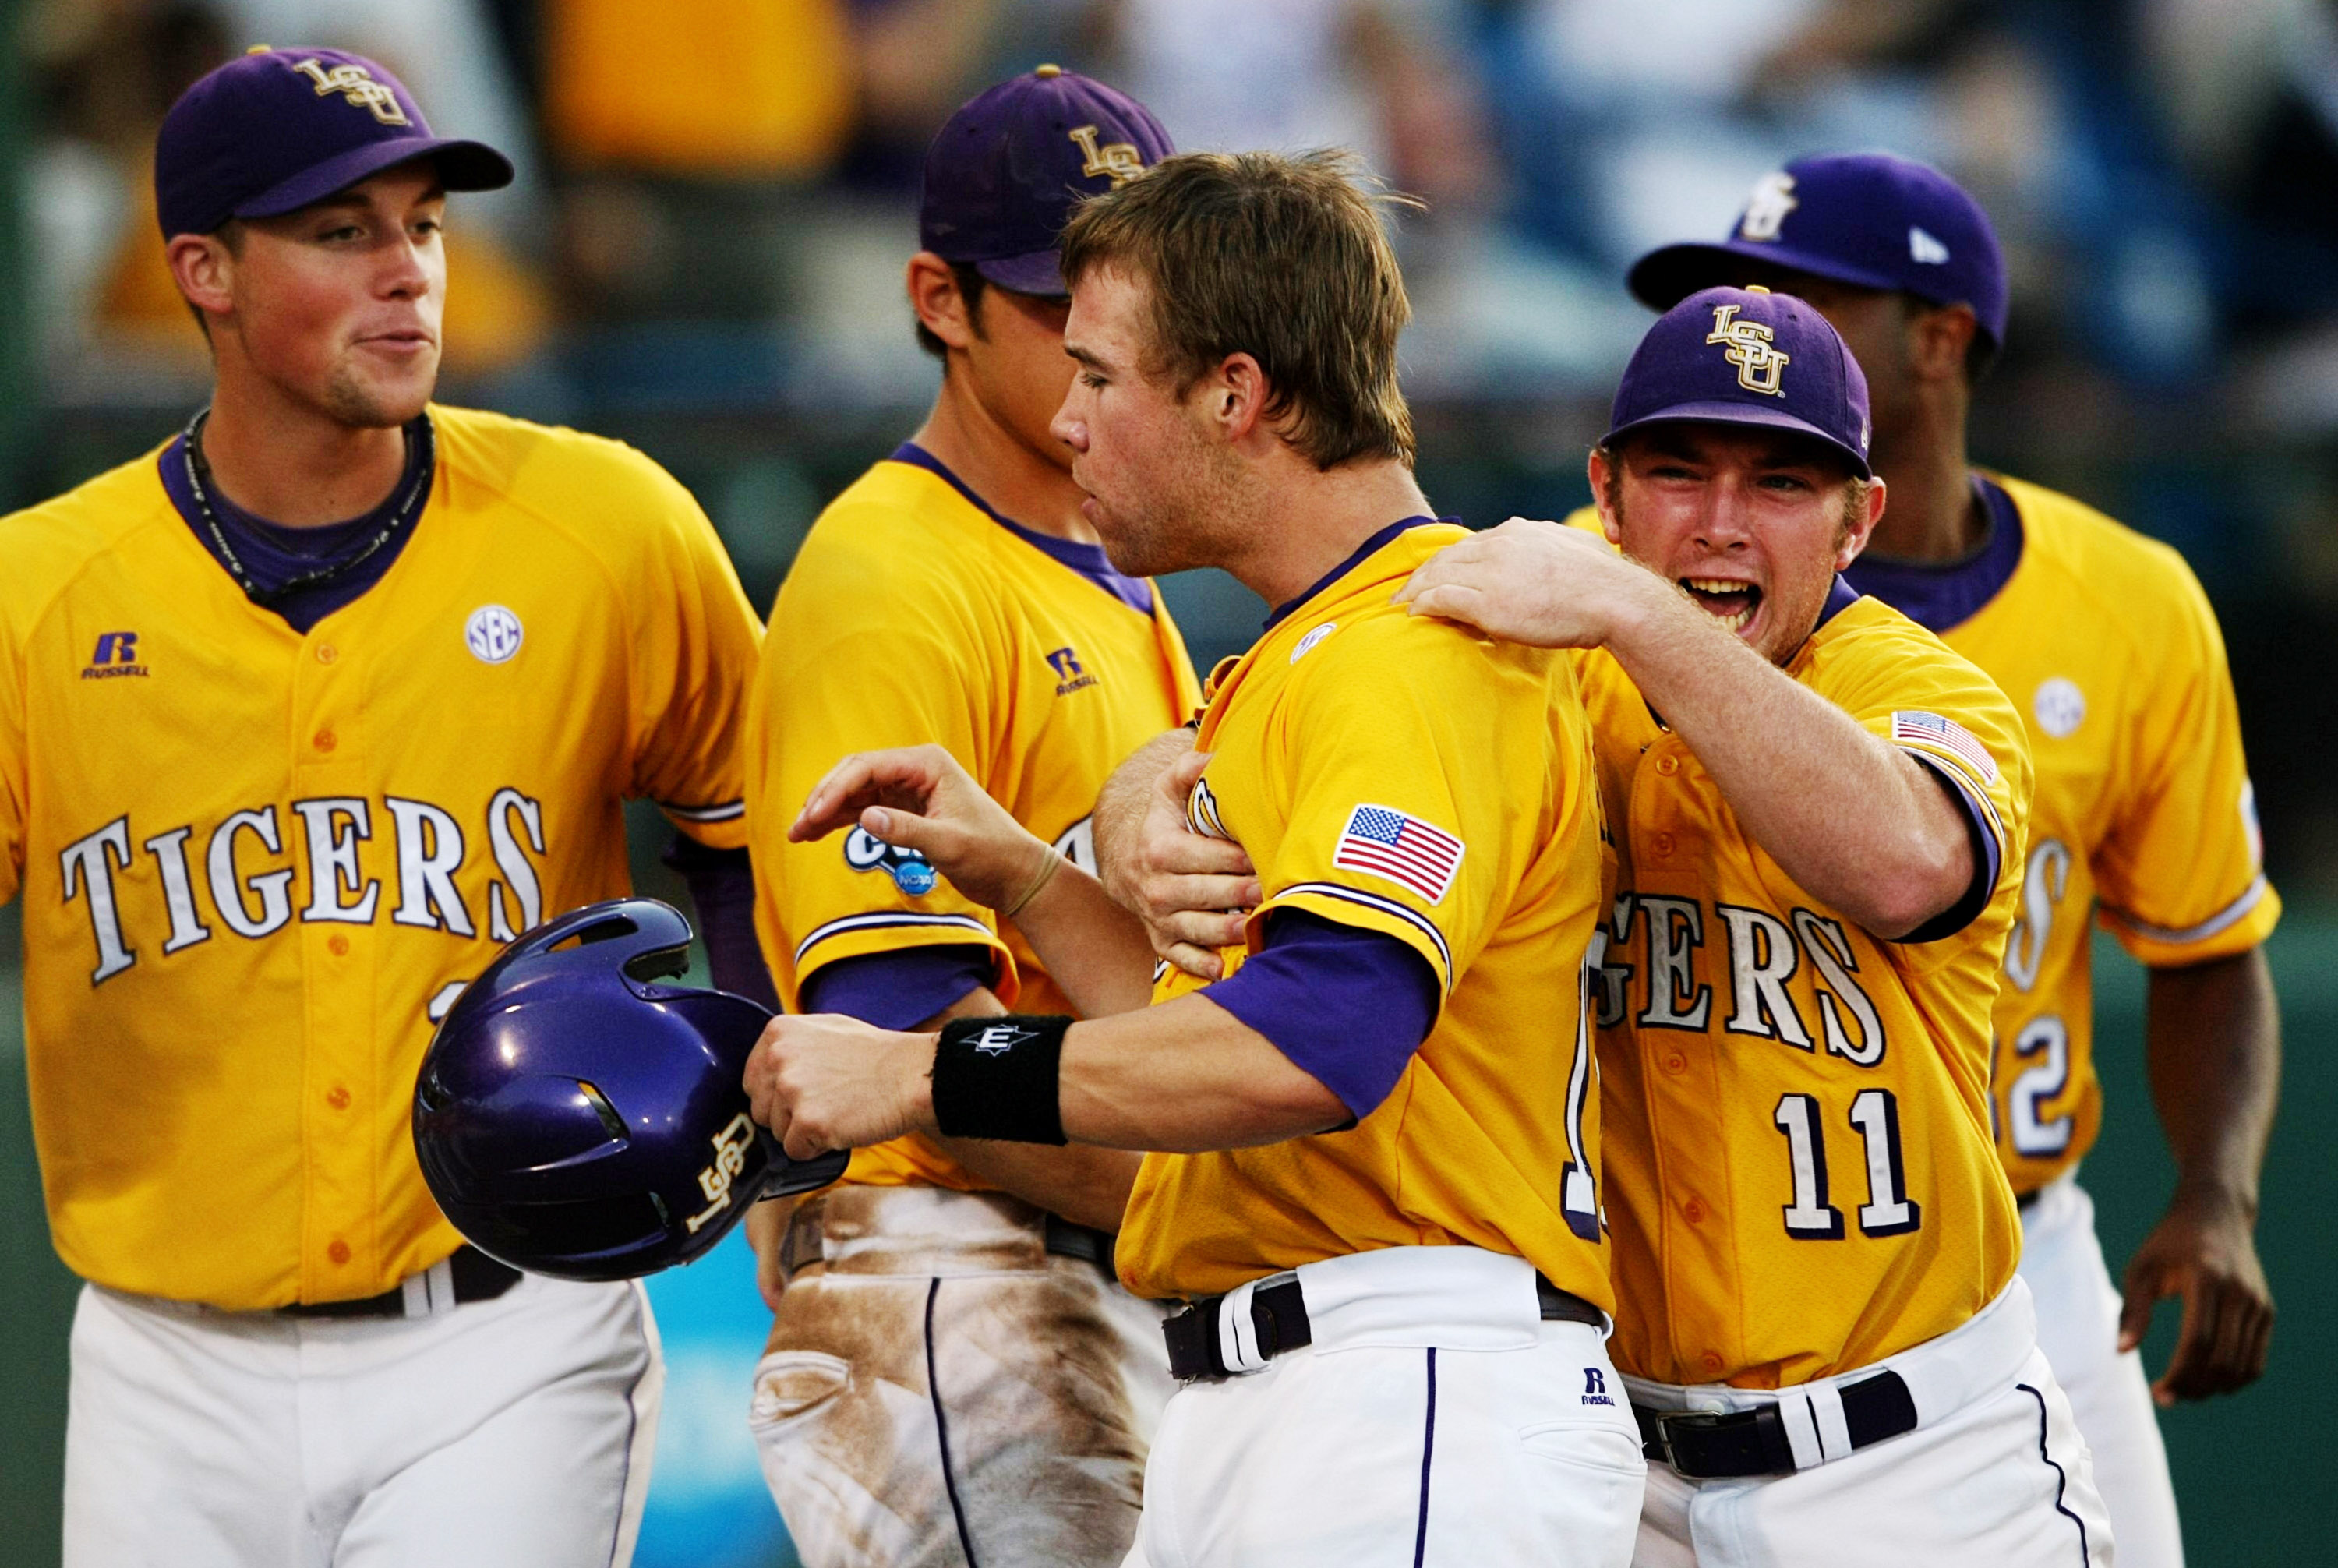 Ryan Schimpf picked up 2 solo HR's for Buffalo, so here's a picture from when he was at LSU and teammates with Sean Ochinko